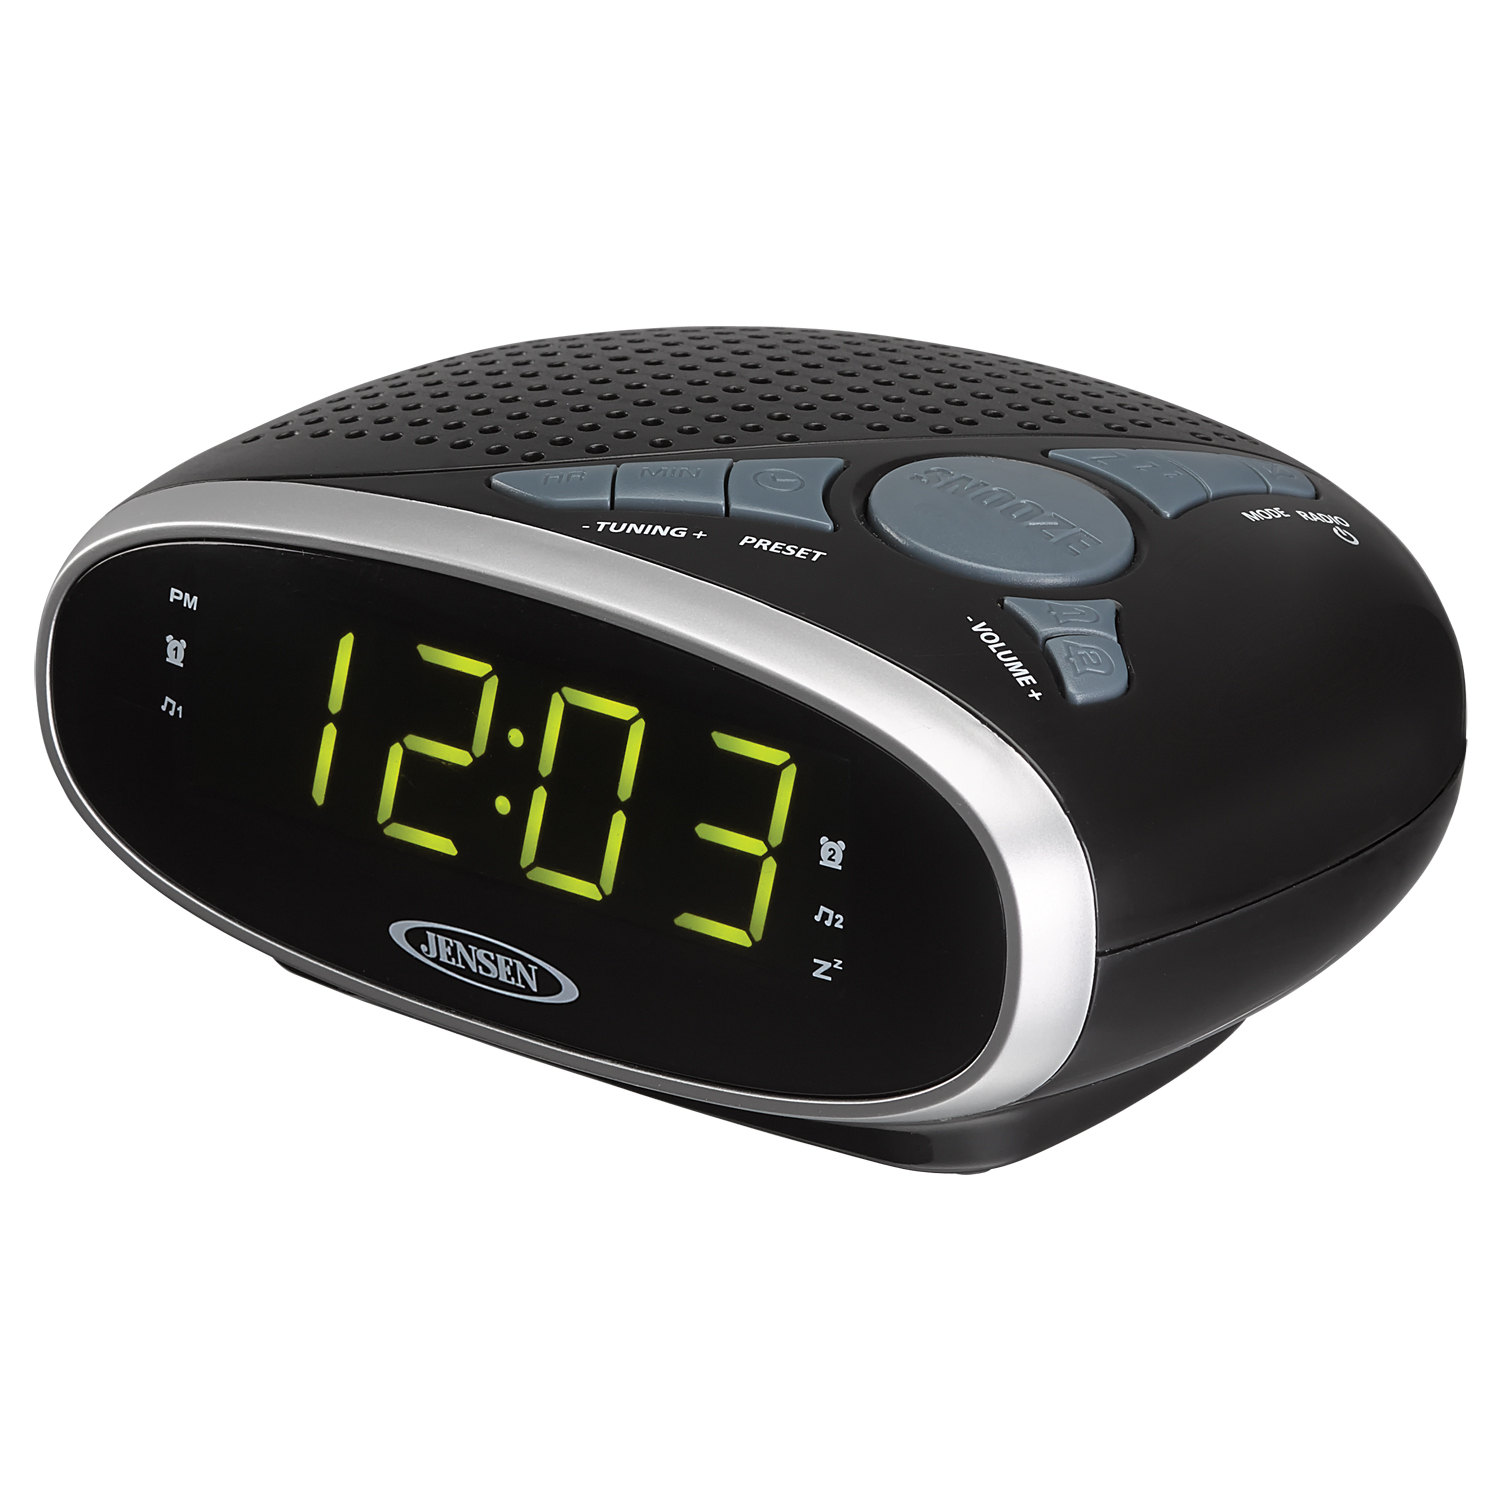 Alarm Clocks Target Jensen Digital Alarm Clock Radio Manual Jensen Am Fm